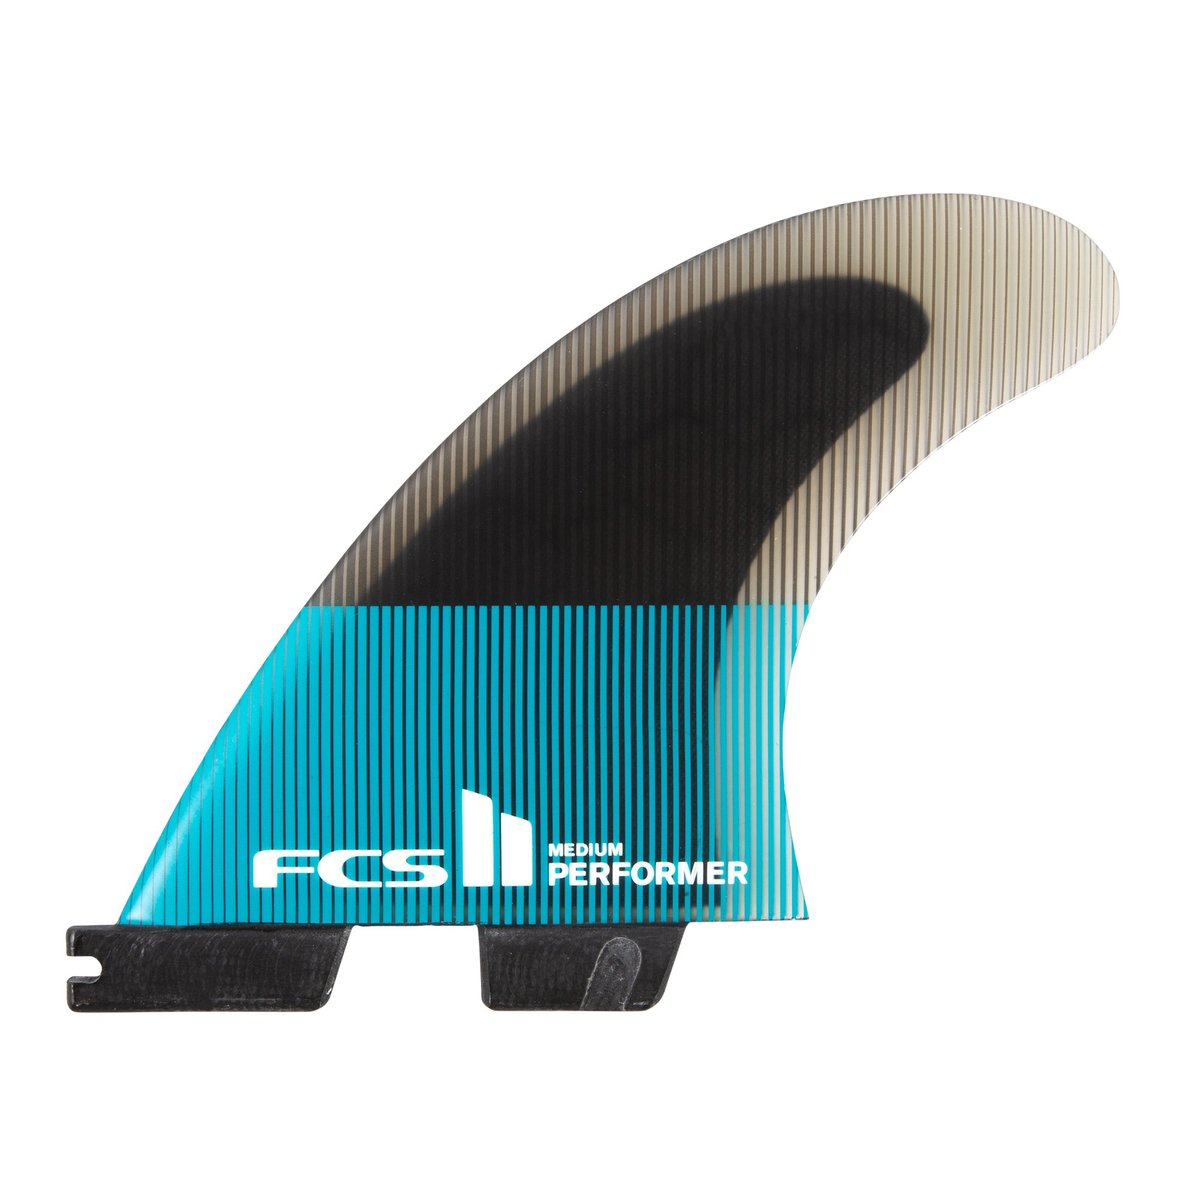 FCS II PERFORMER PC SMALL TEAL/BLACK QUAD REAR